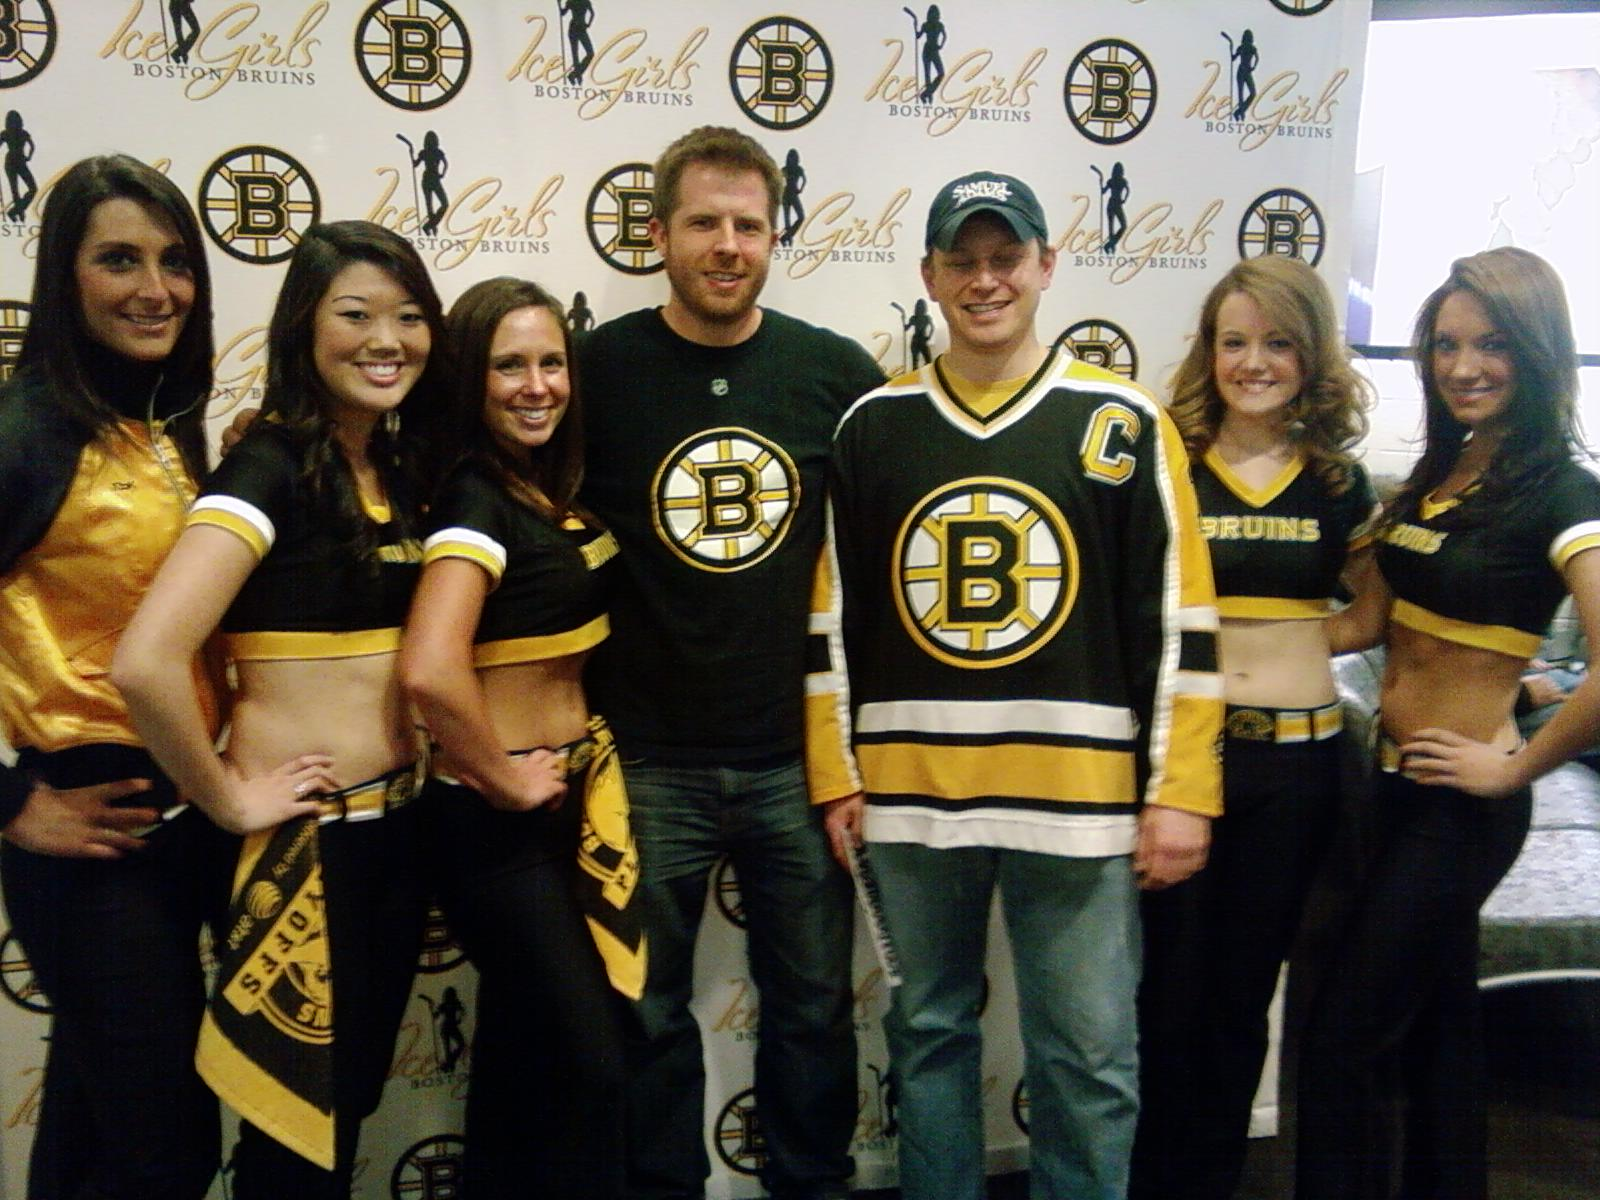 boston girls The most up-to-date breaking news for the boston bruins including highlights, roster, schedule, scores and archives.